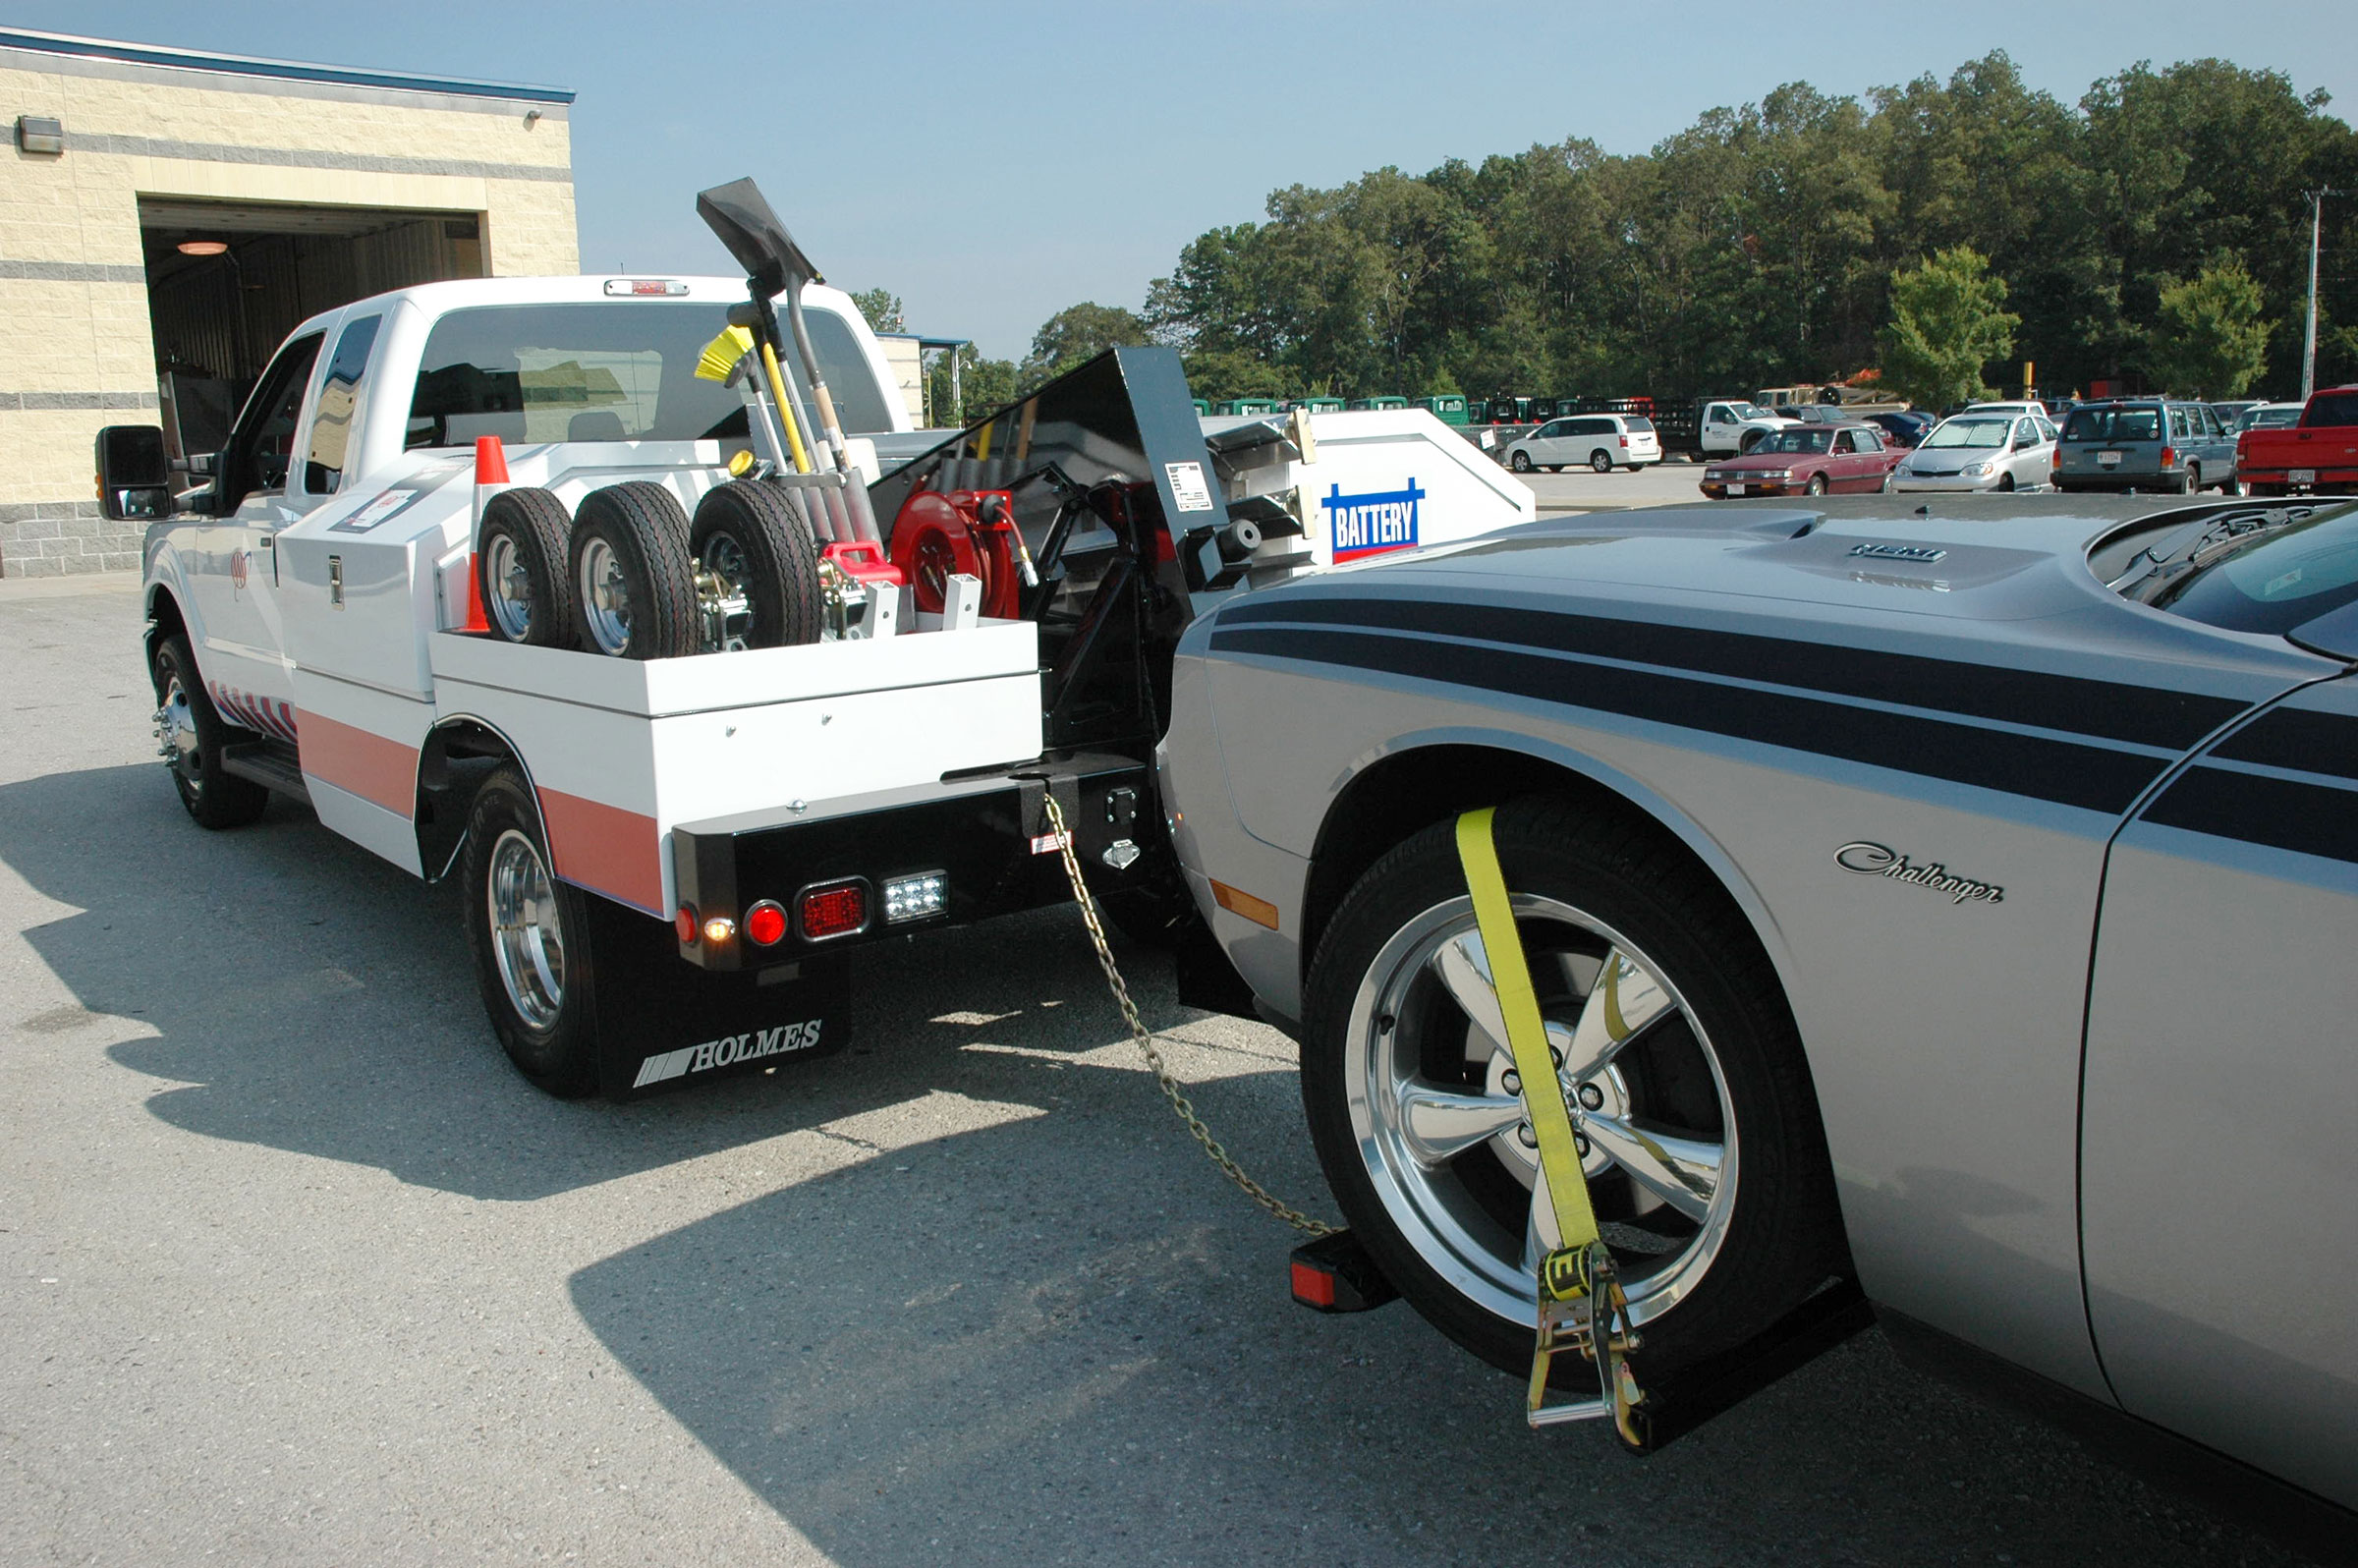 holmes-220-tow-service-vehicle-towing